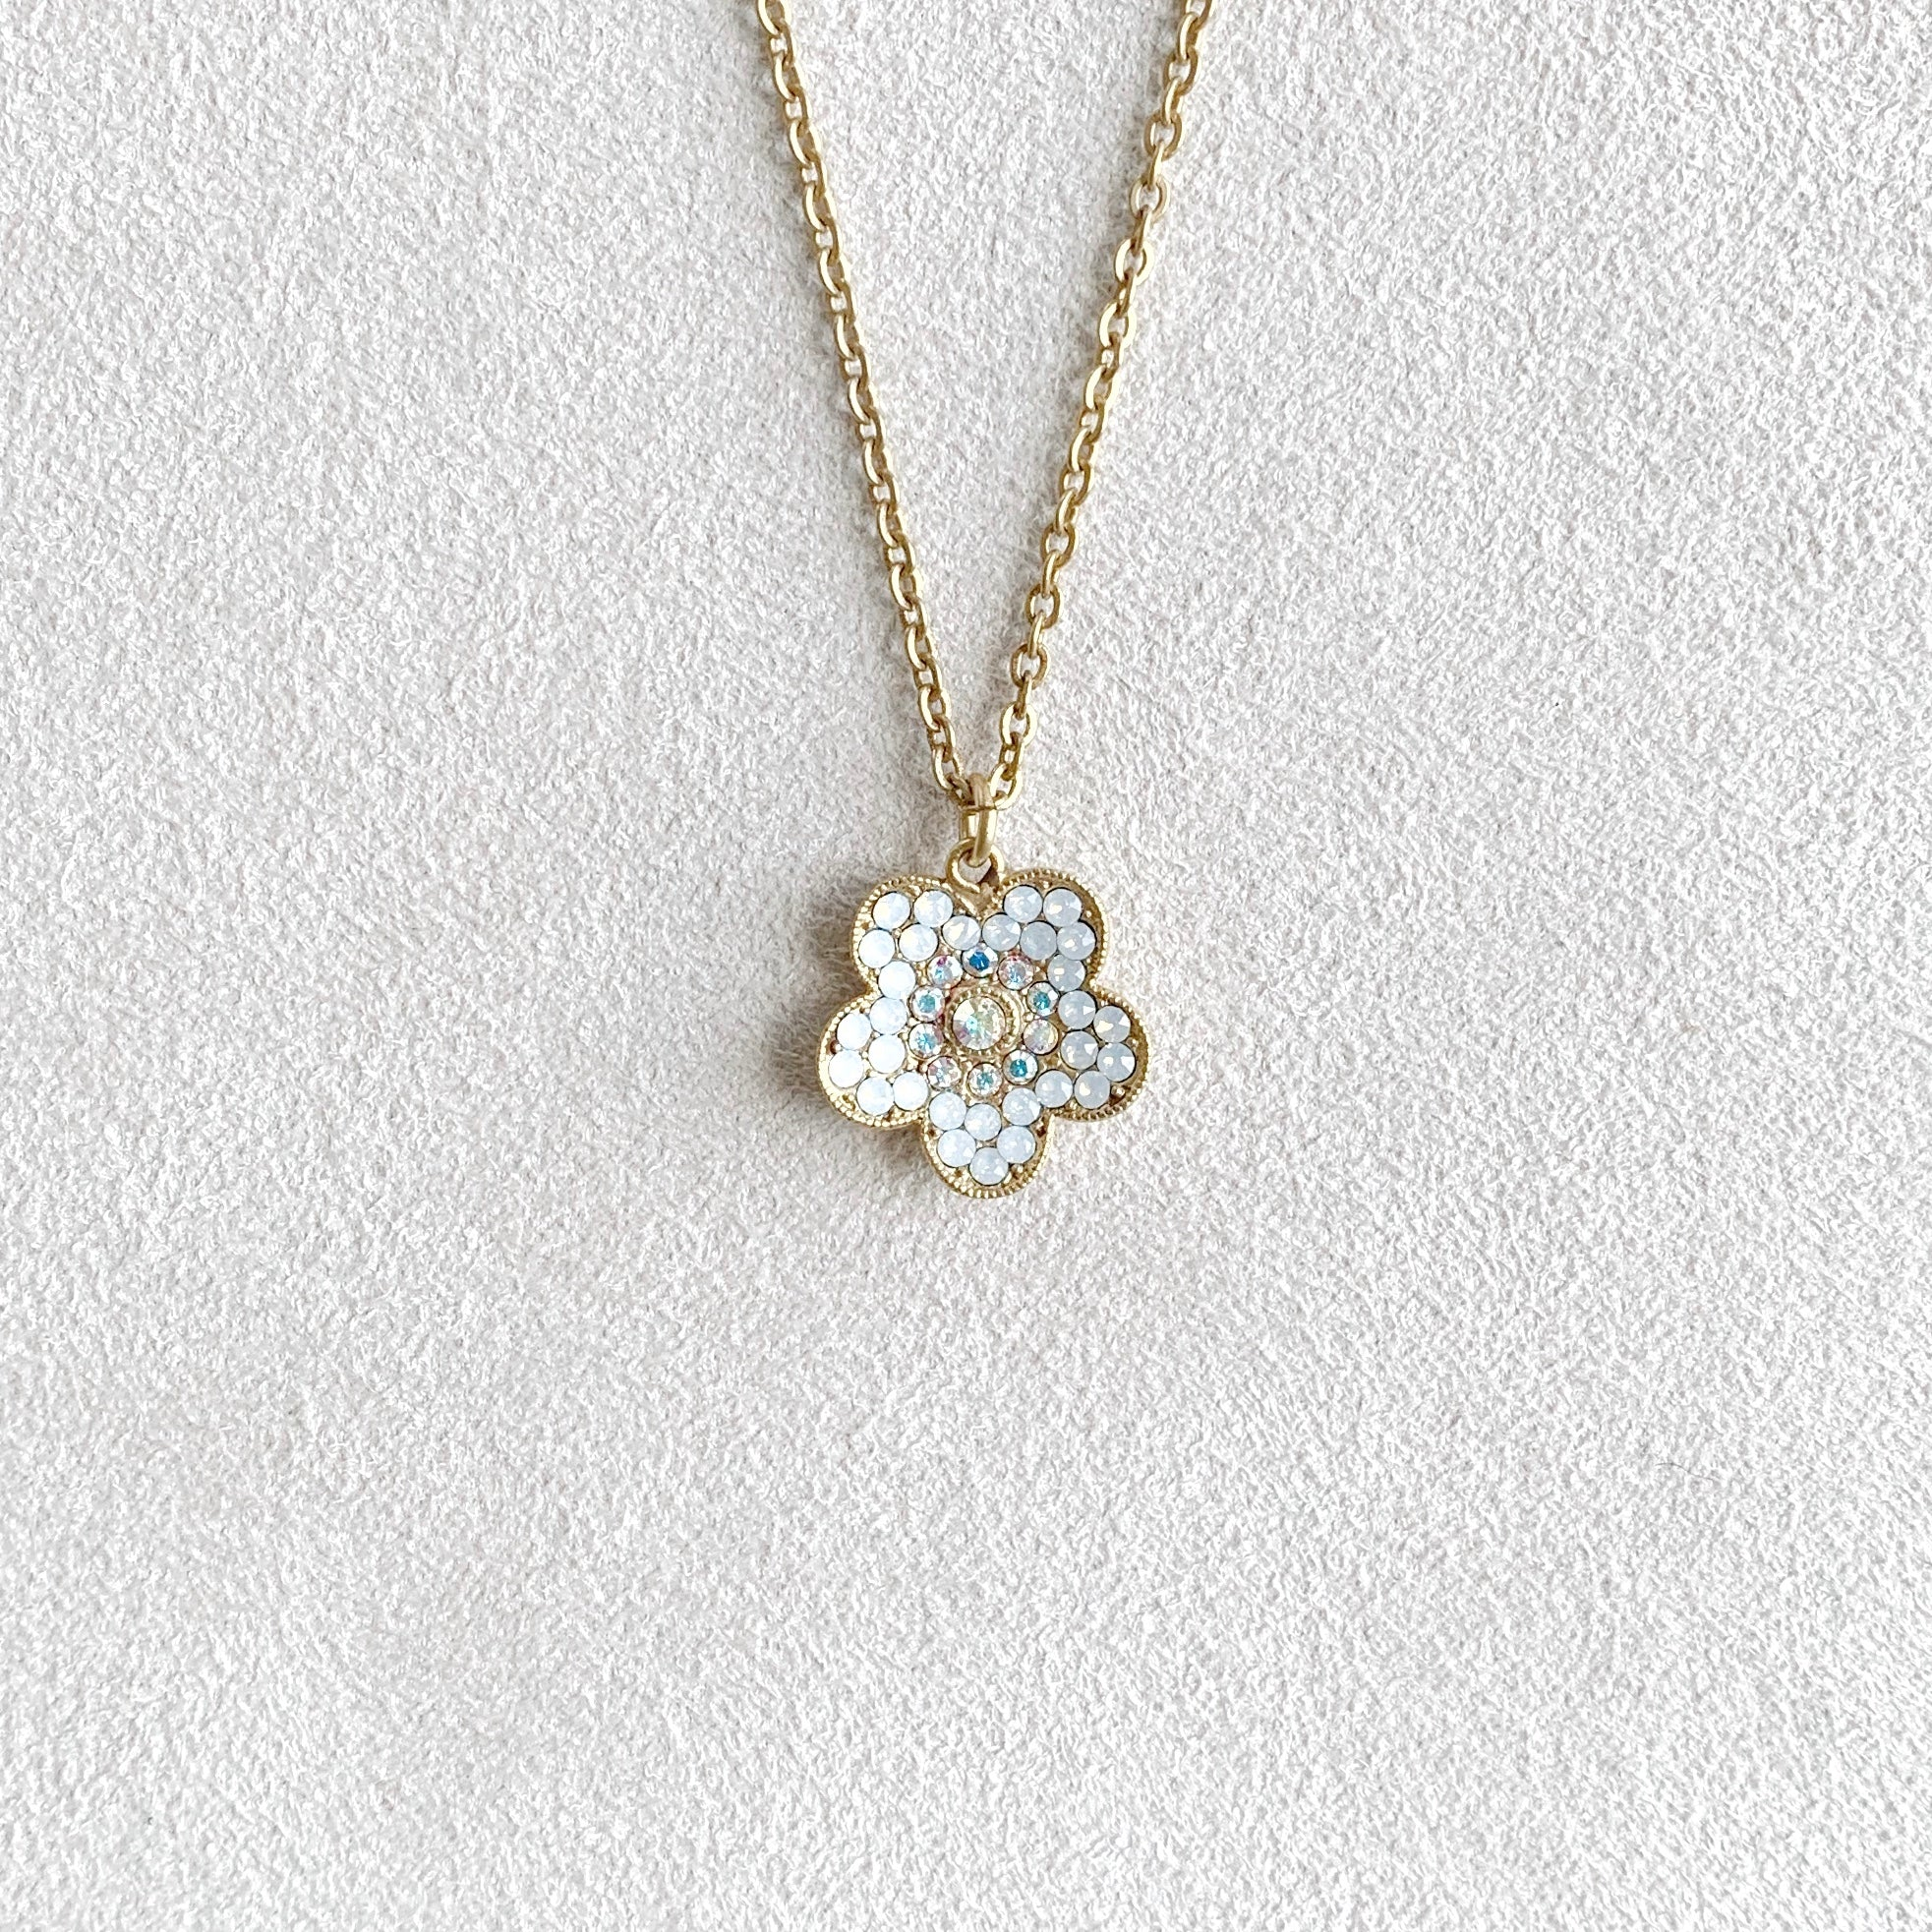 Crystal Flower Pendant Necklace in White Opal